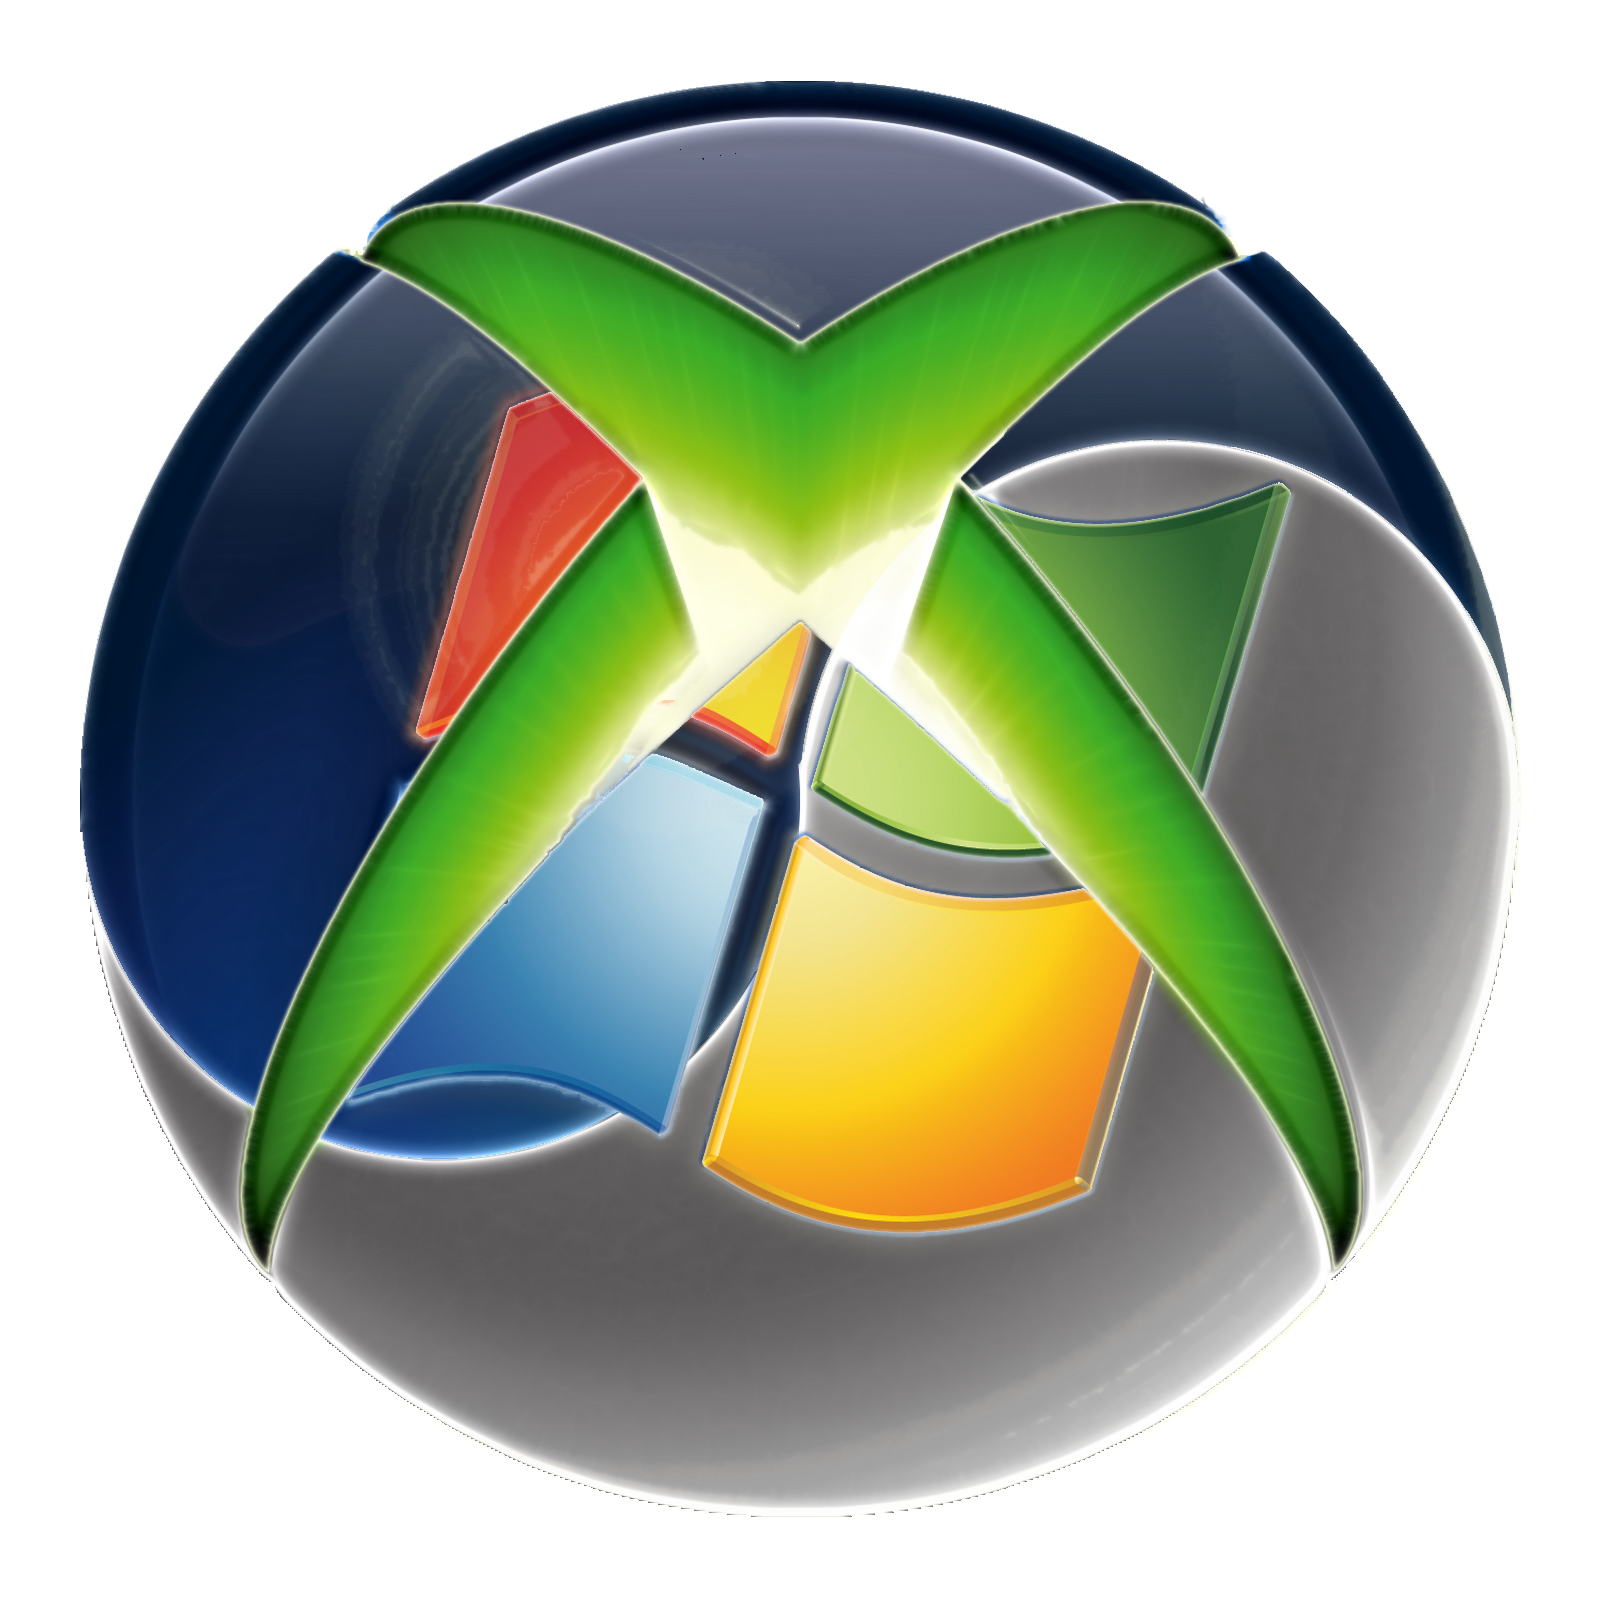 the gallery for gt xbox logo png